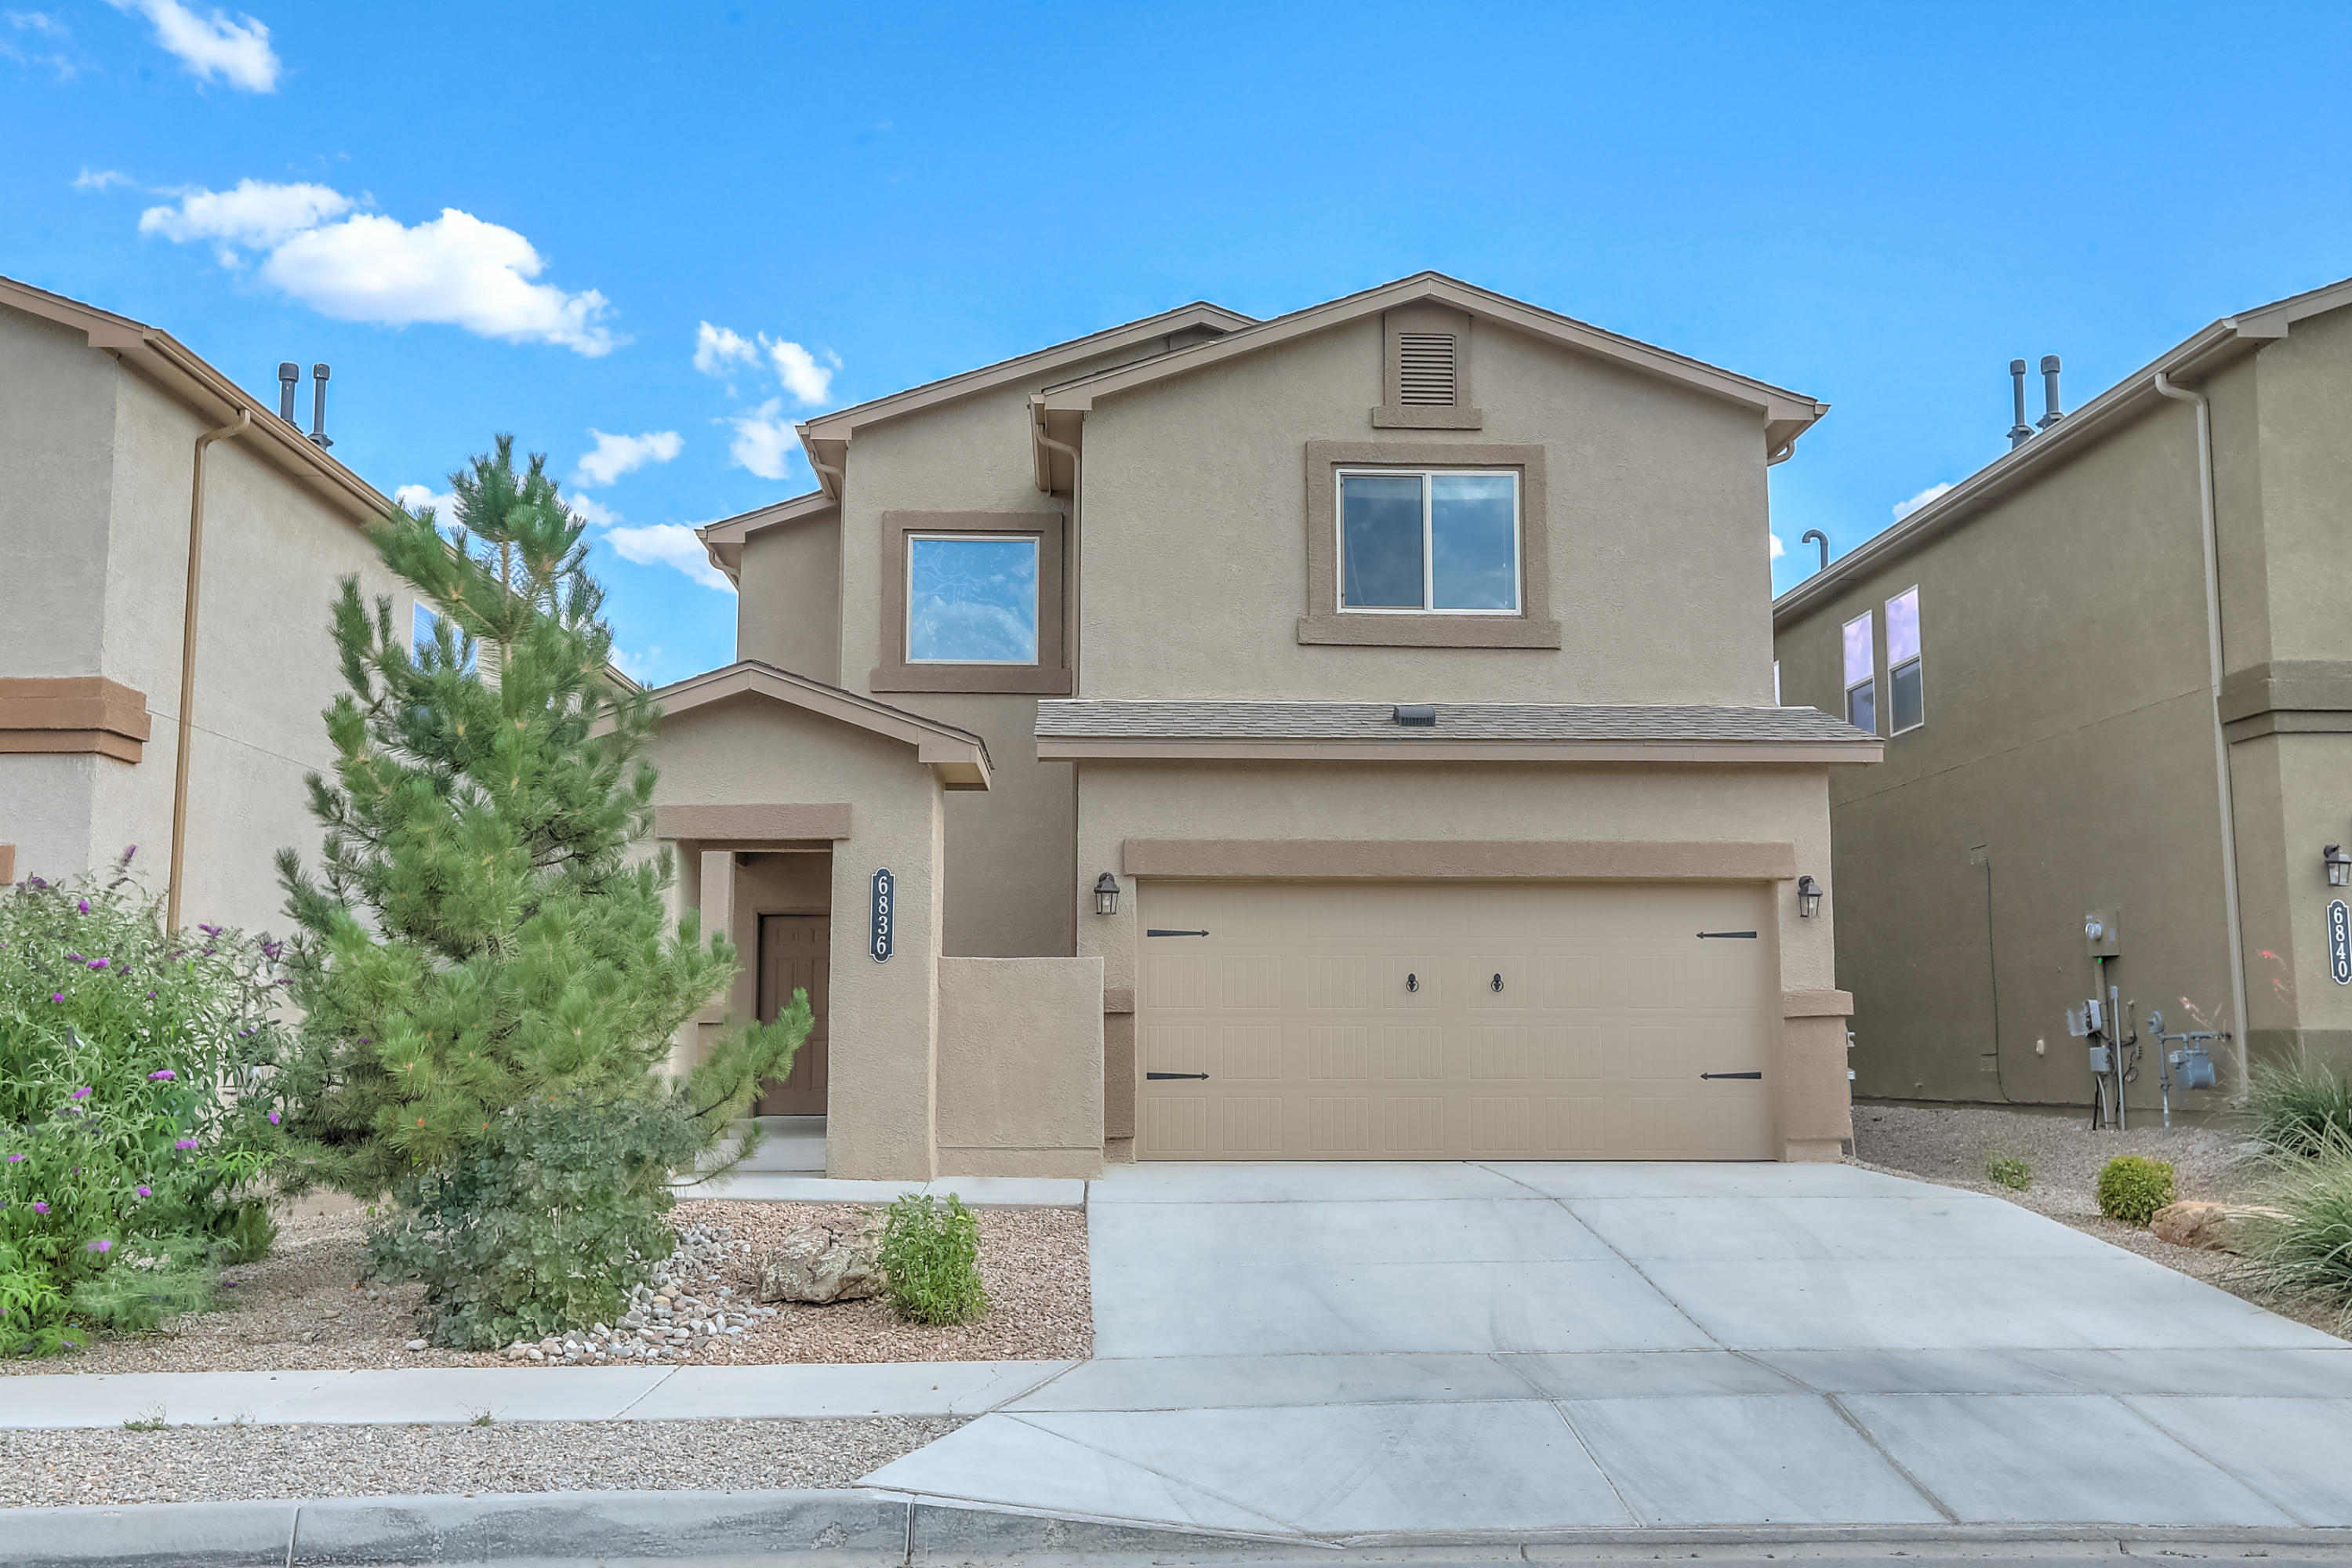 6836 OASIS CANYON Road NW Property Photo - Albuquerque, NM real estate listing